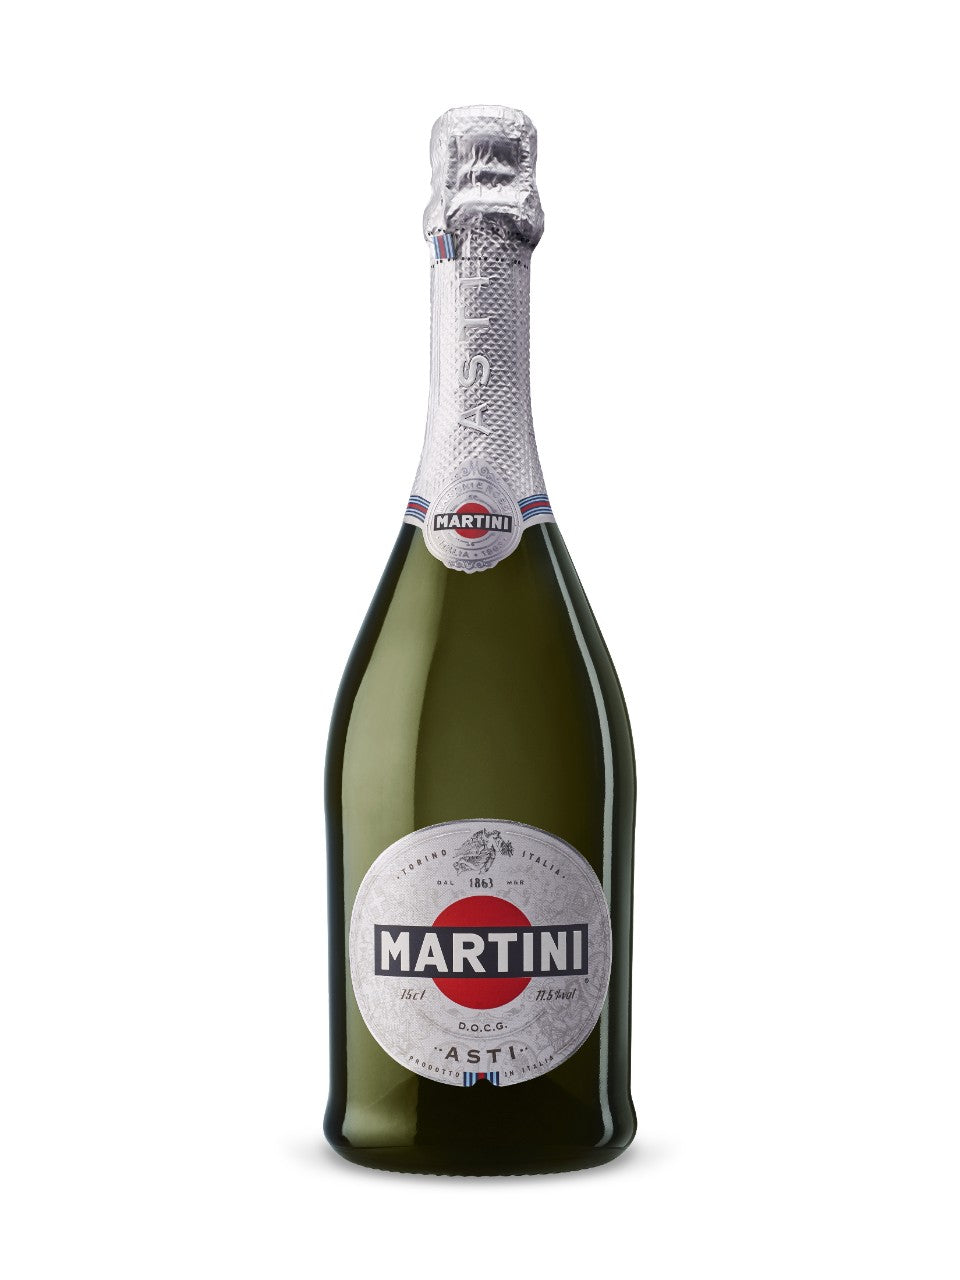 Martini Asti Spumanti 750ml - Wines N Drinks